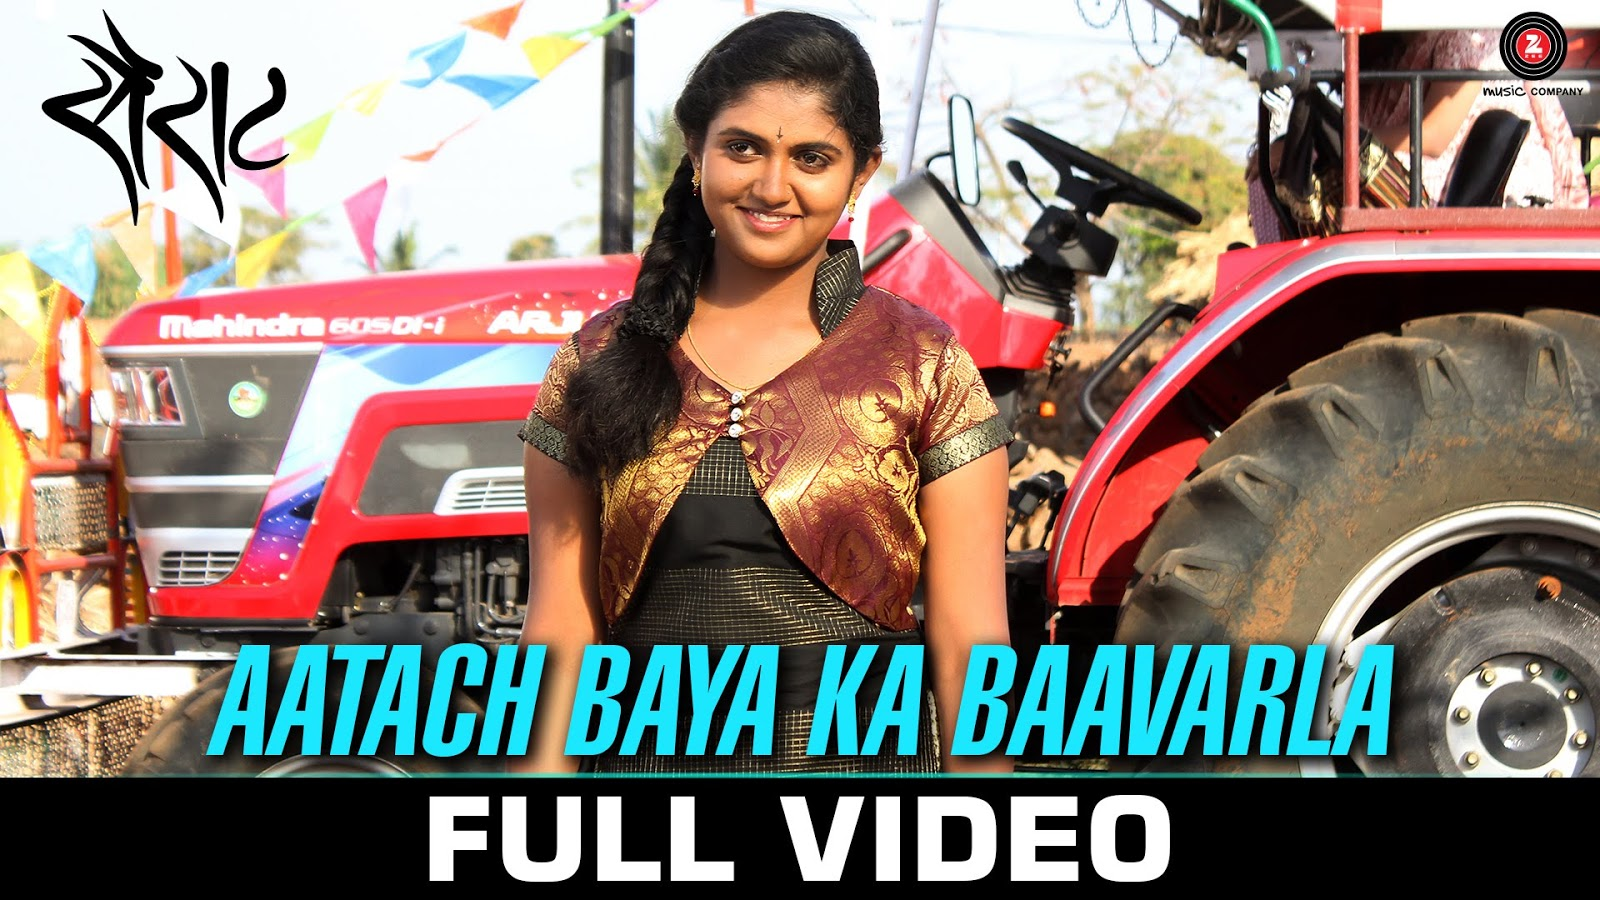 Aatach Baya Ka Baavarla Lyrics - Sairat | Popsongs.club